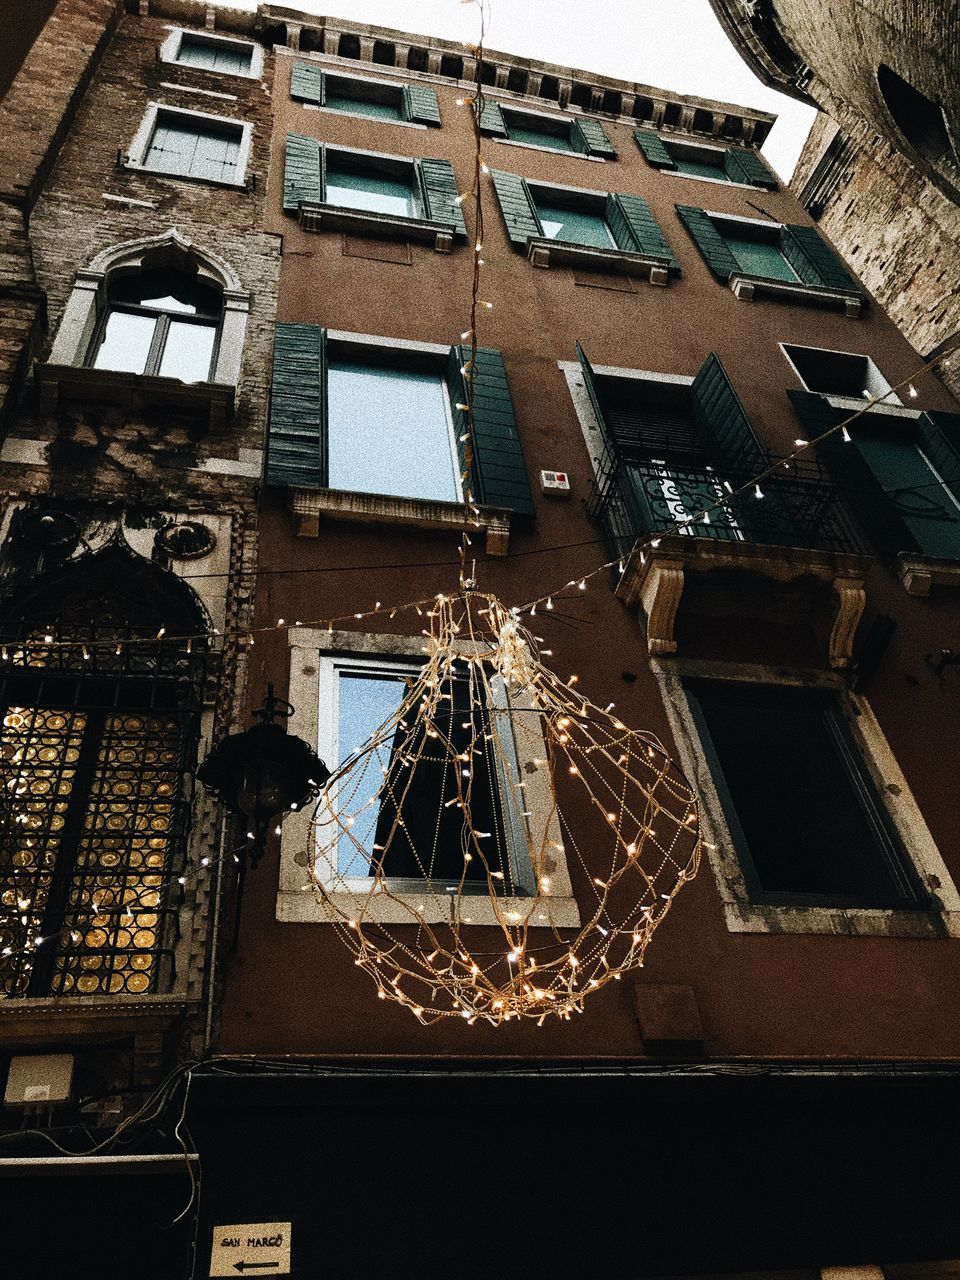 built structure, architecture, building exterior, low angle view, building, no people, window, residential district, illuminated, outdoors, night, lighting equipment, nature, city, staircase, balcony, fire escape, old, reflection, apartment